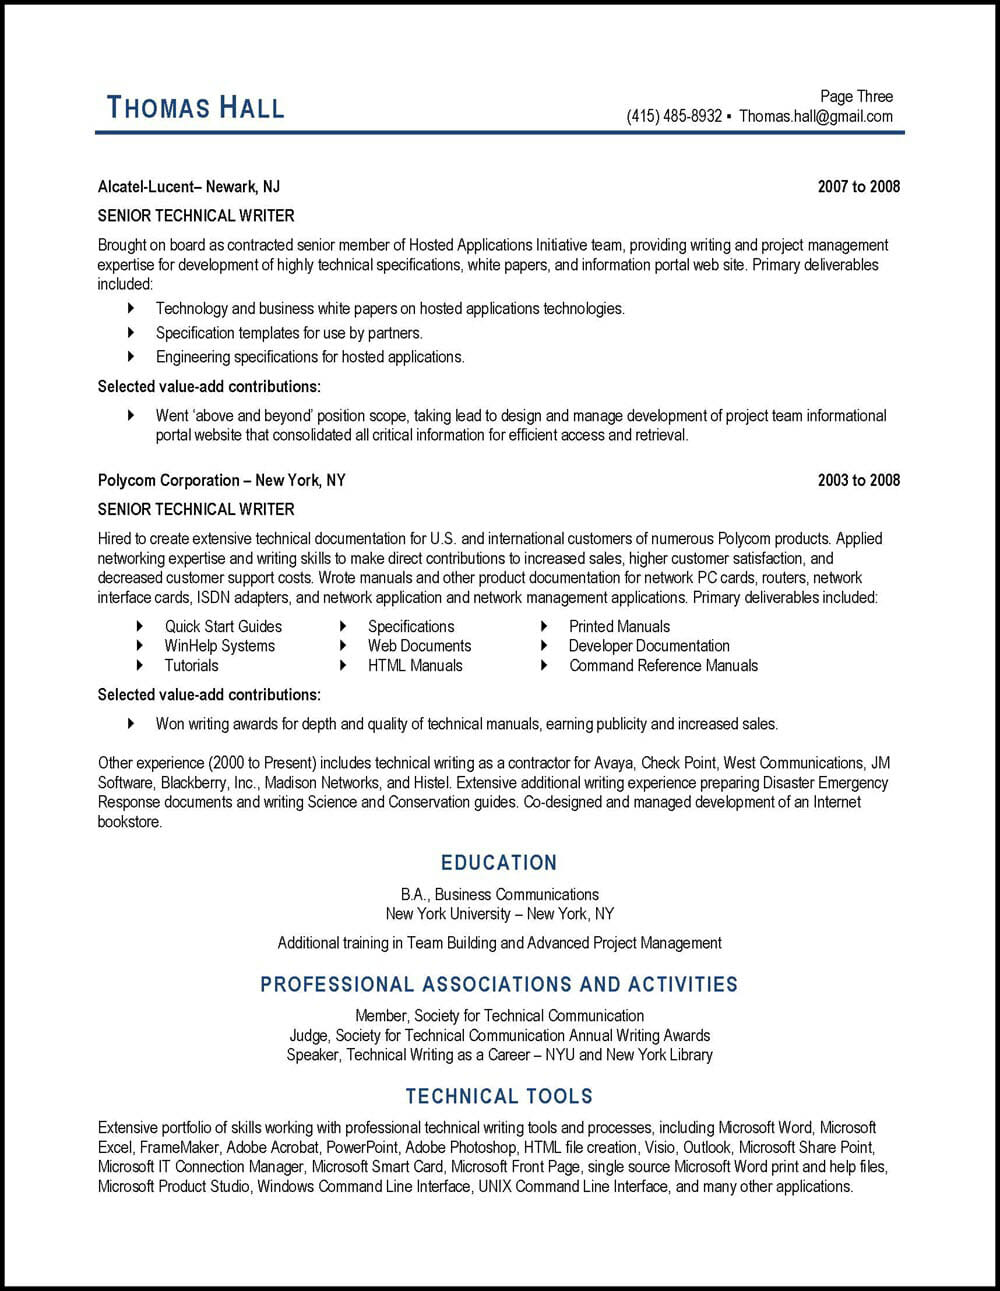 technical writer resume example distinctive career services technology for unskilled Resume Technology Resume Writer